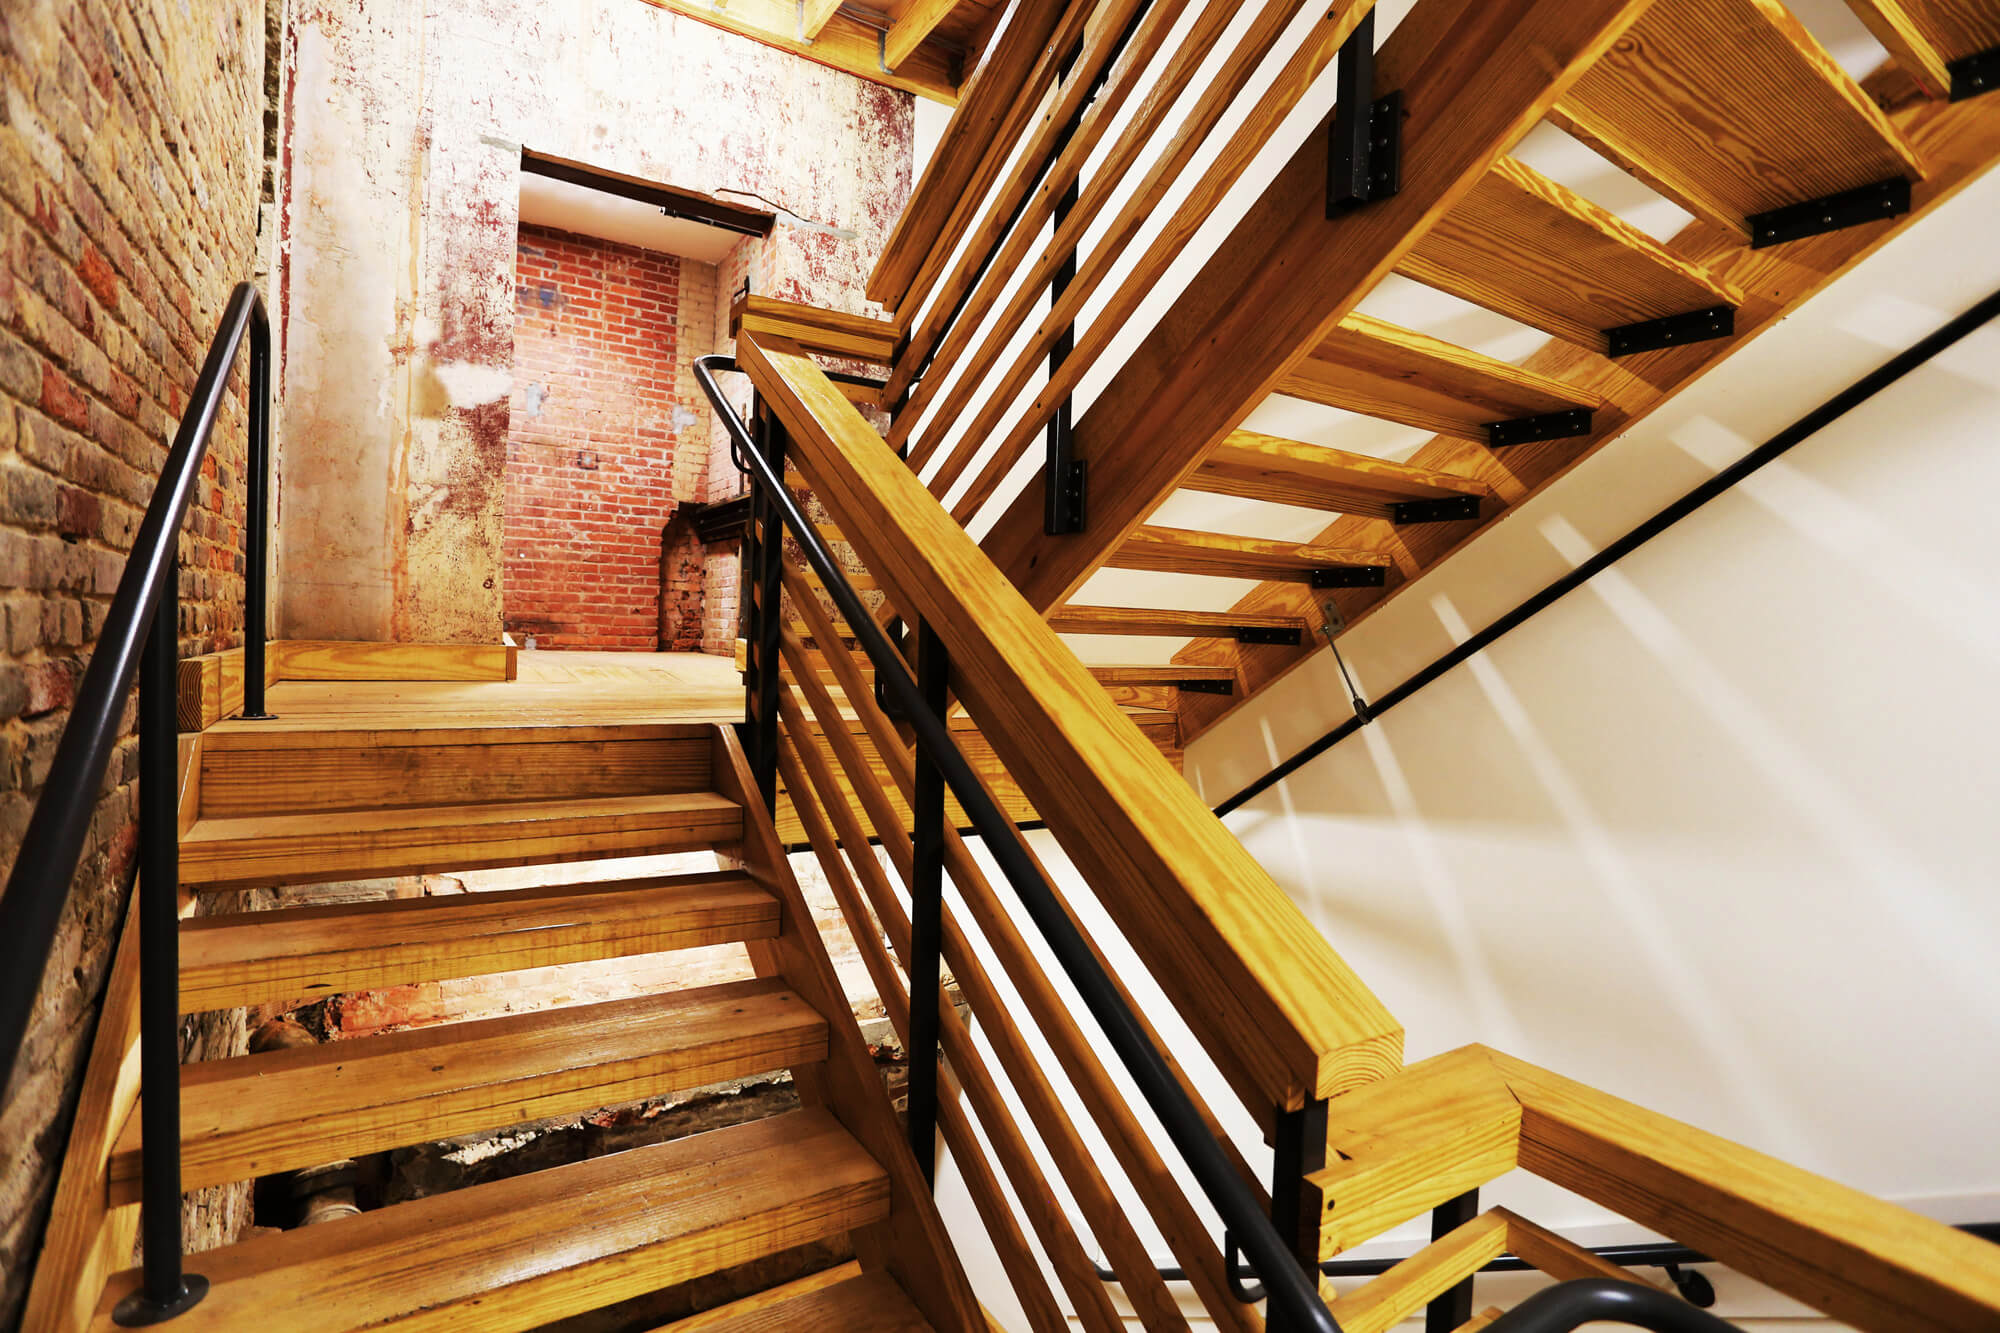 District 36 Lofts Designed by Foshee Architecture - Rear Wood Stairs and Exposed Brick Walls